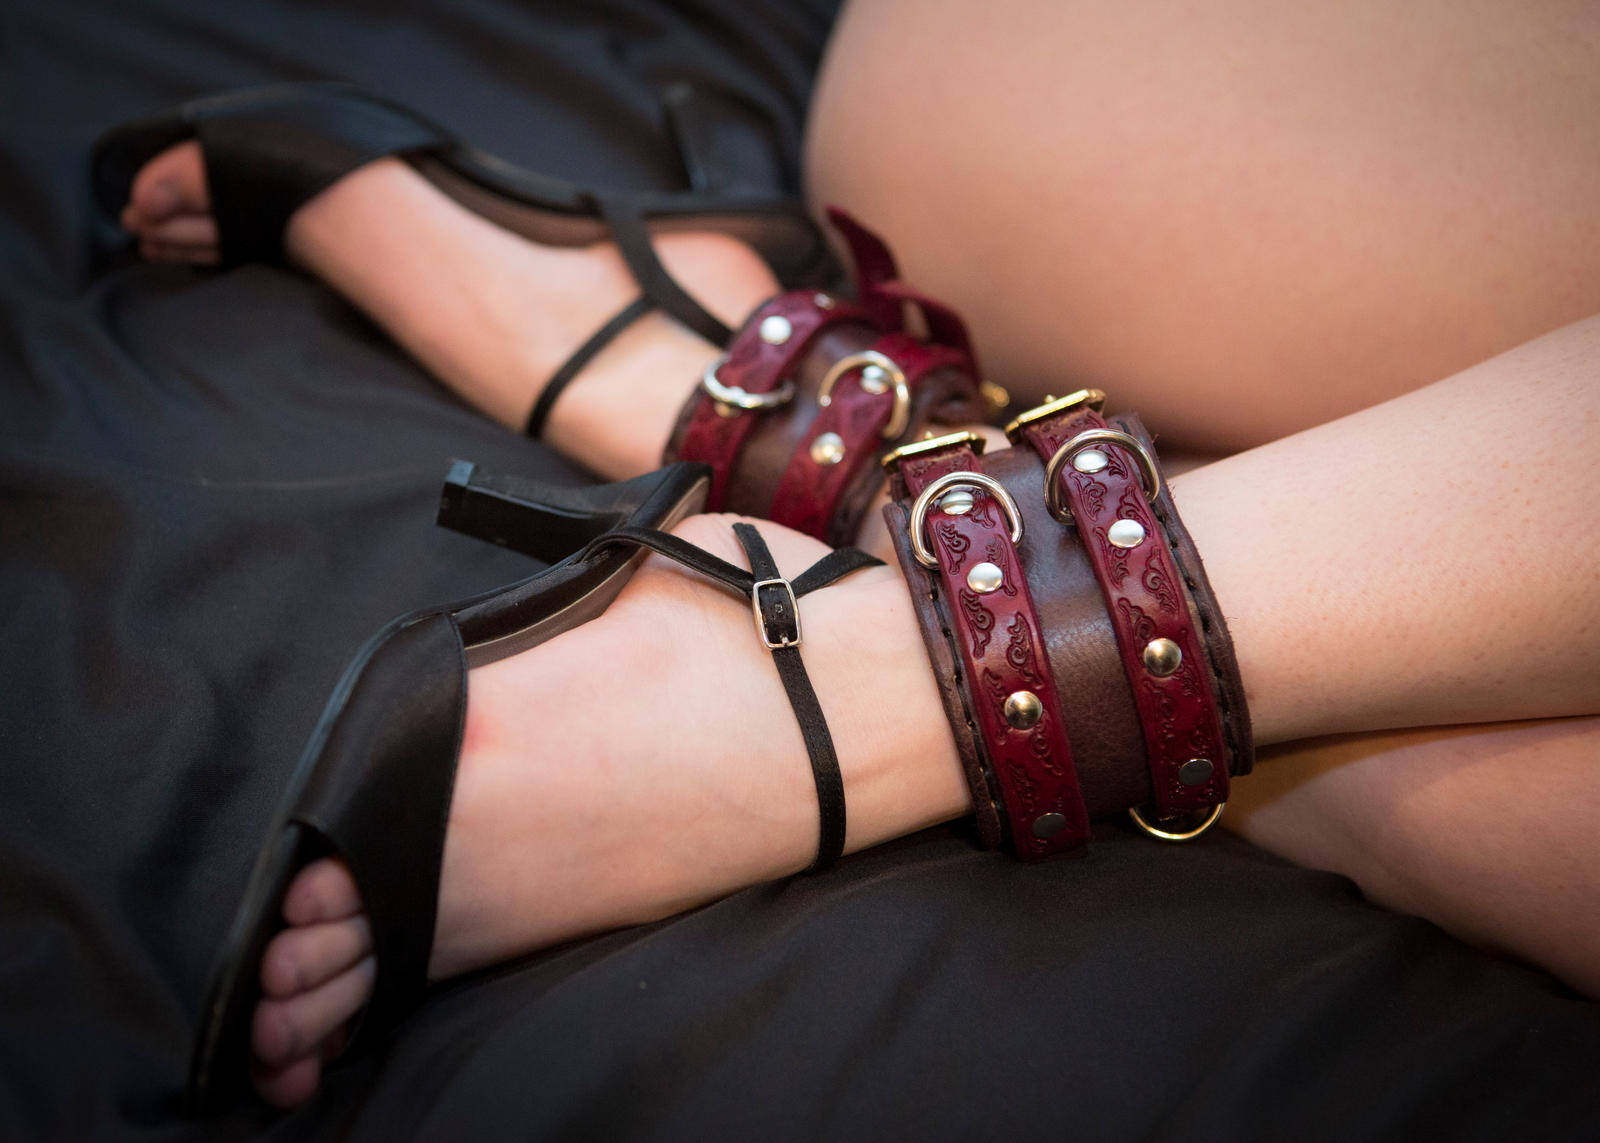 bondage leather cage and shackles